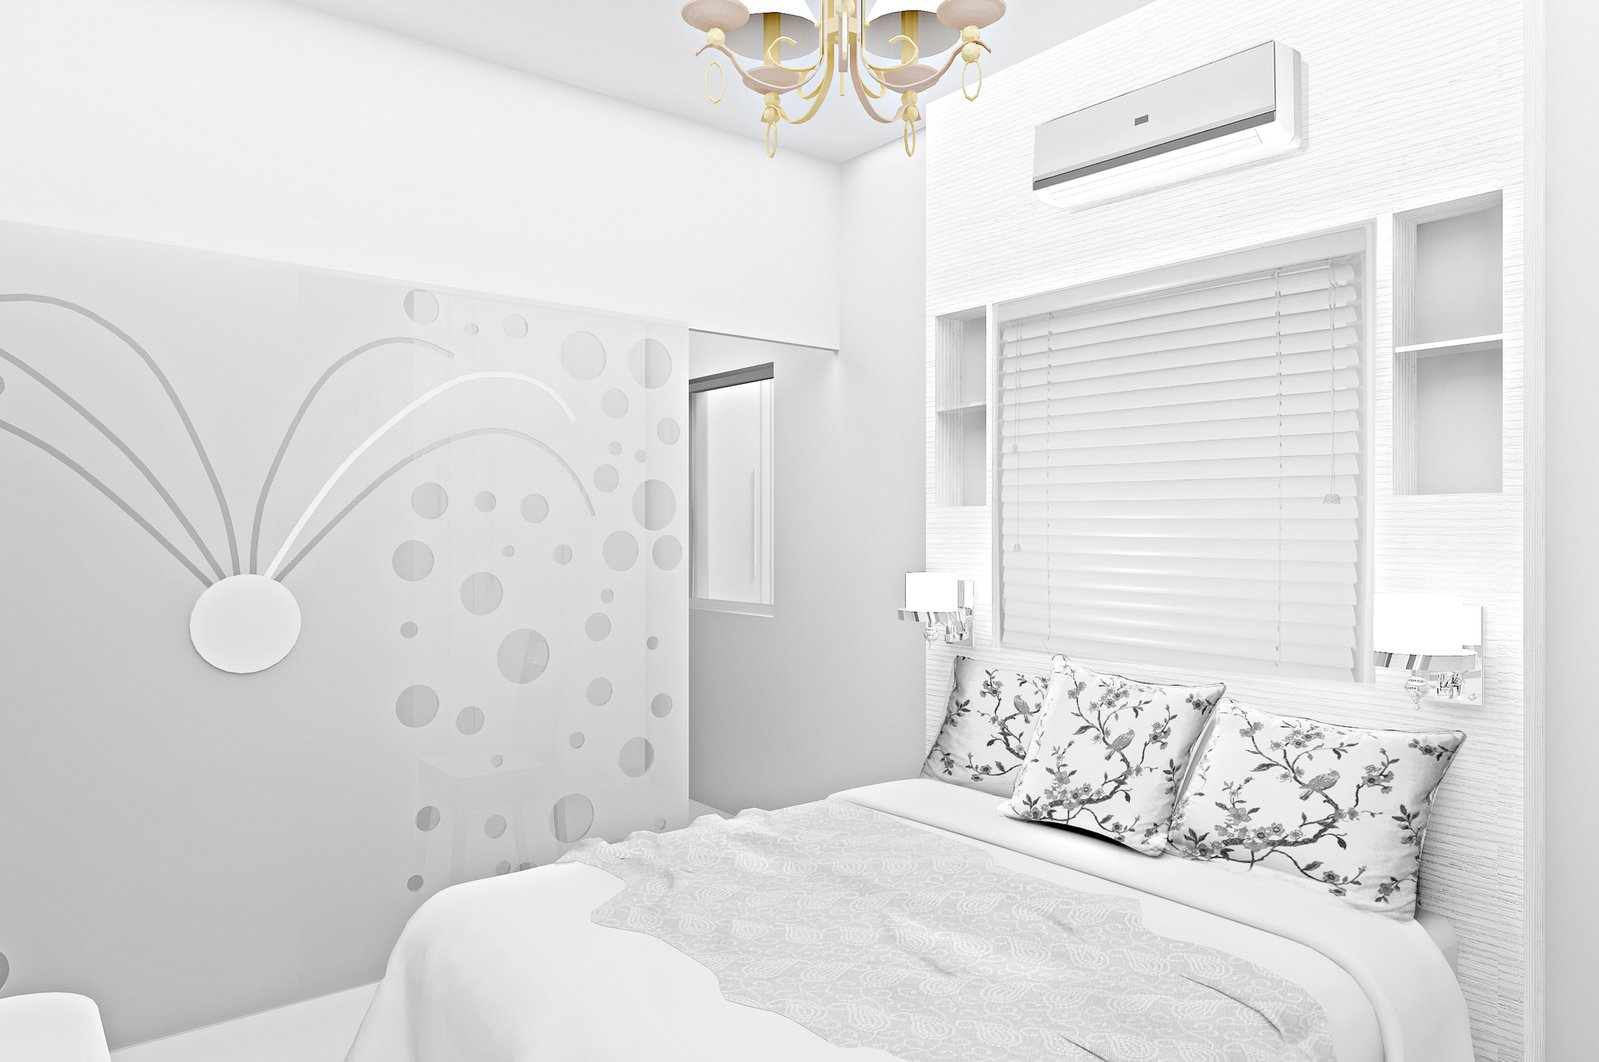 Free bedroom concept design stock photo for Bedroom concepts